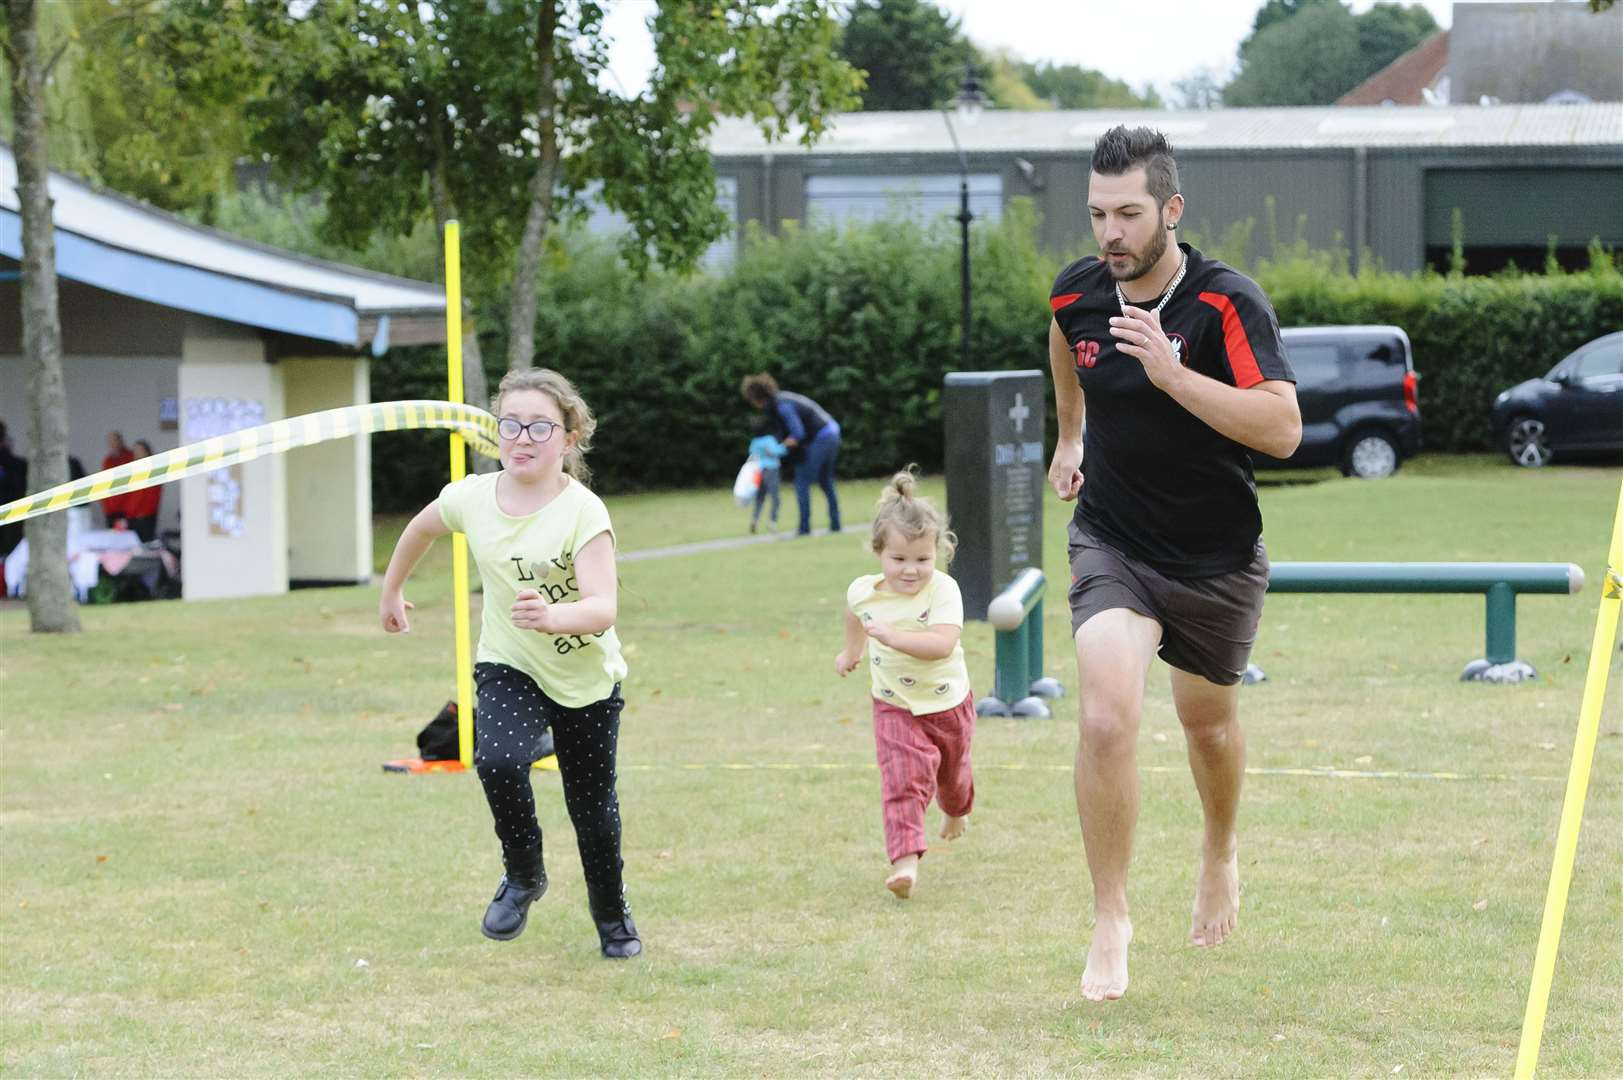 Diss Athletics Club Fun Day at Diss Mere Park pictured are Harlie-Rose Martin, Rio Martin andGordon Coe...Picture: Mark Bullimore Photography 2019. (34298358)